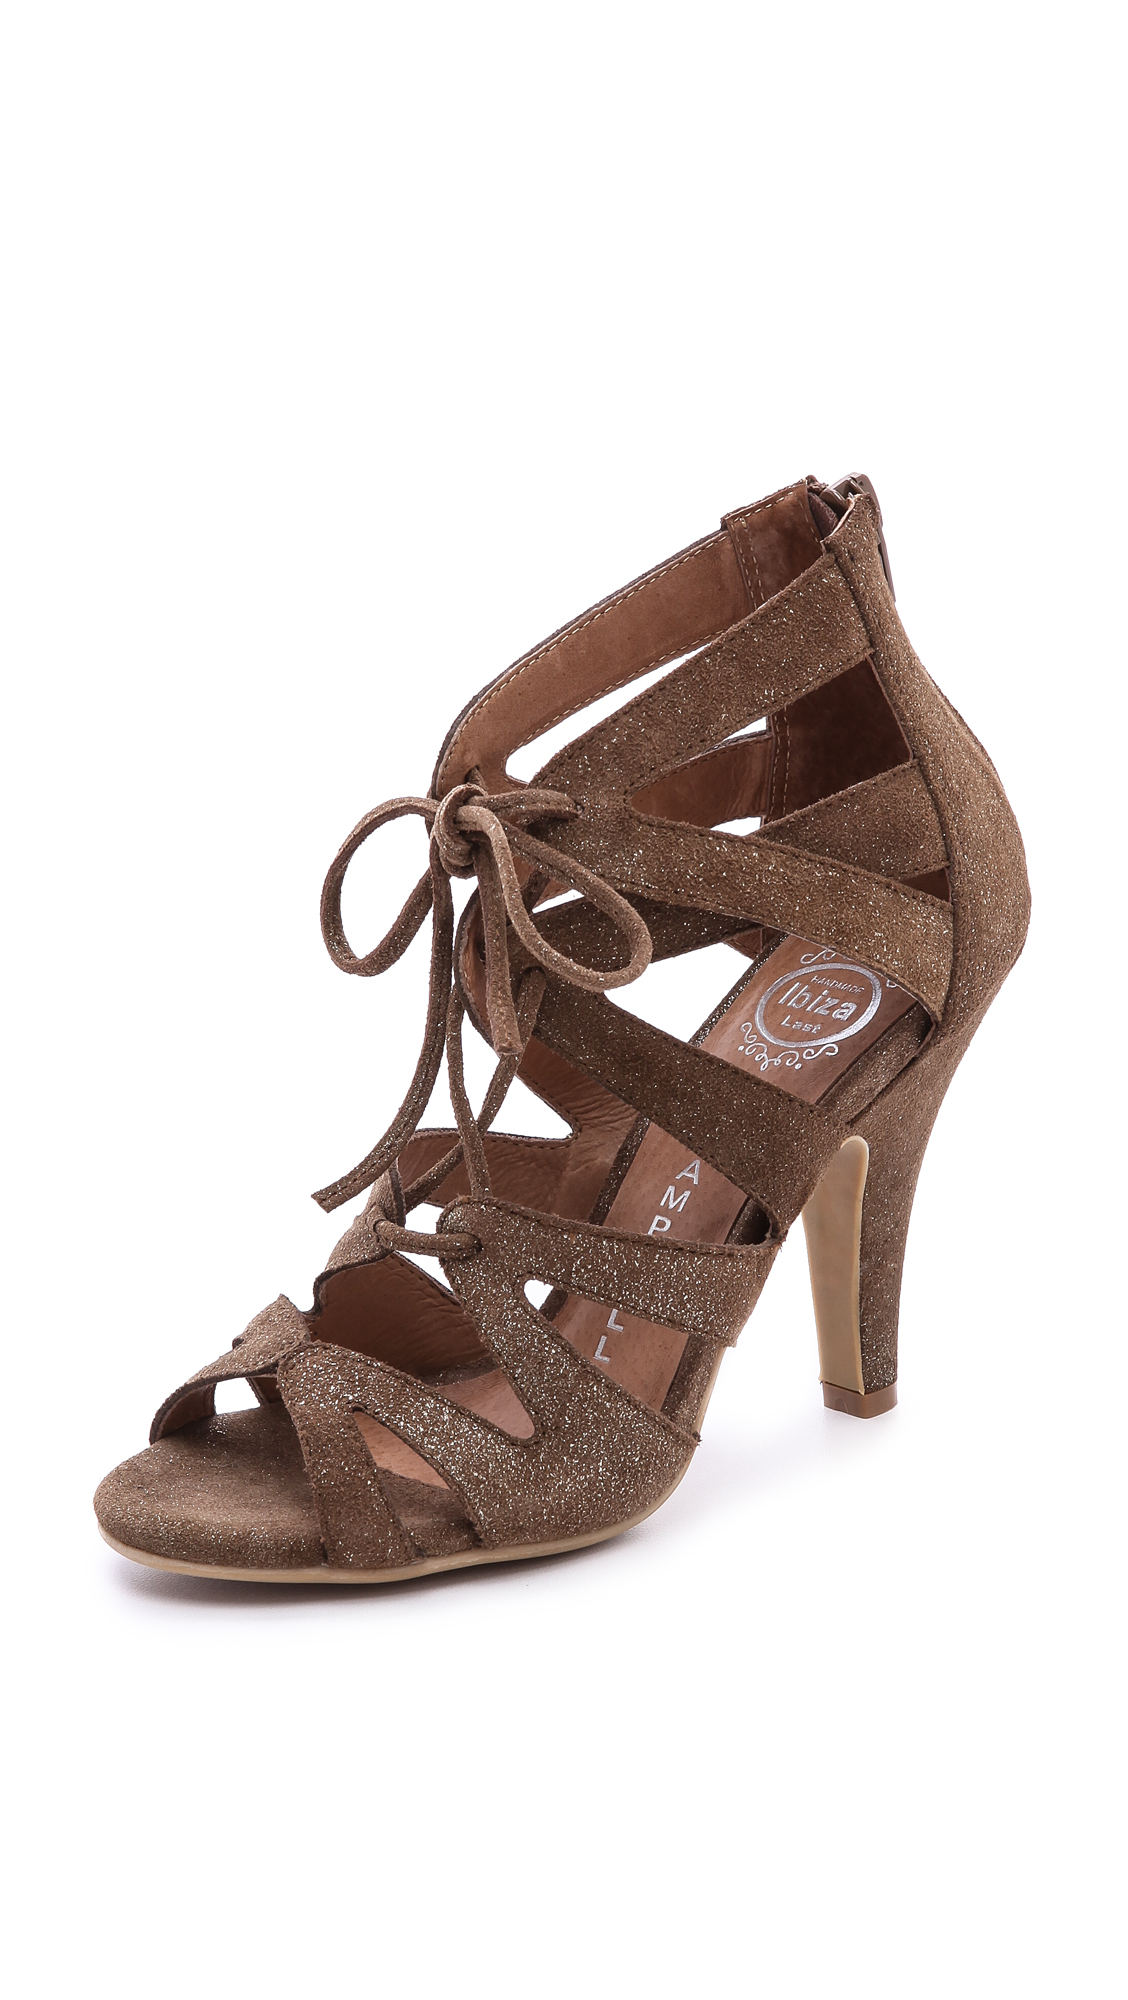 Jeffrey campbell Laramie Lace Up Sandals Brown in Brown